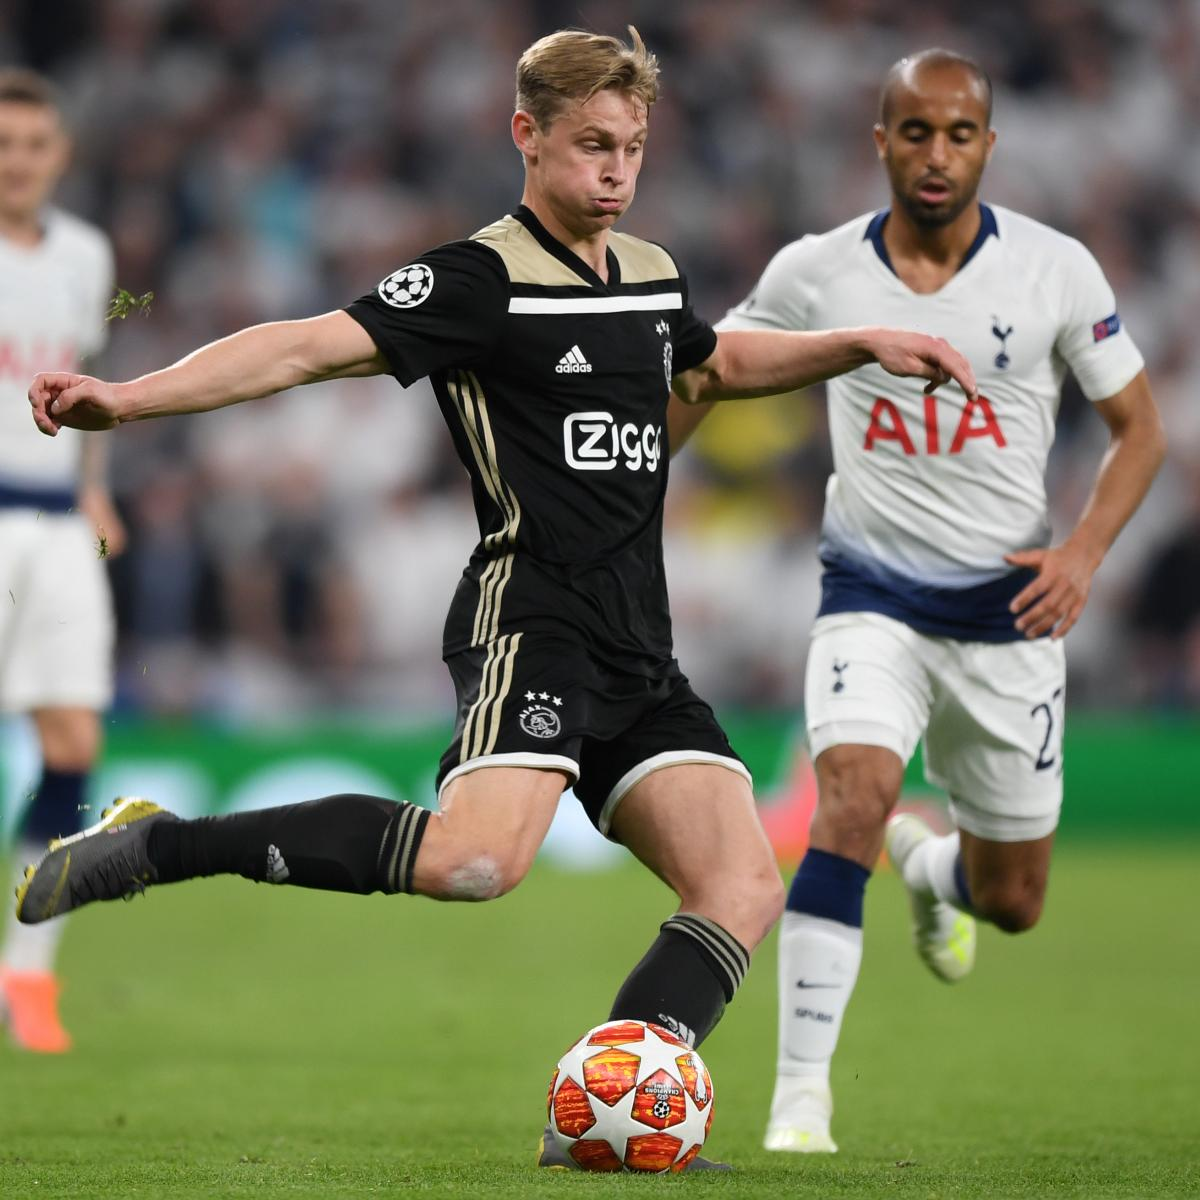 Tottenham Vs Ajax Tickets Away End: Ajax Vs. Tottenham Hotspur: Preview, Live Stream, TV Info